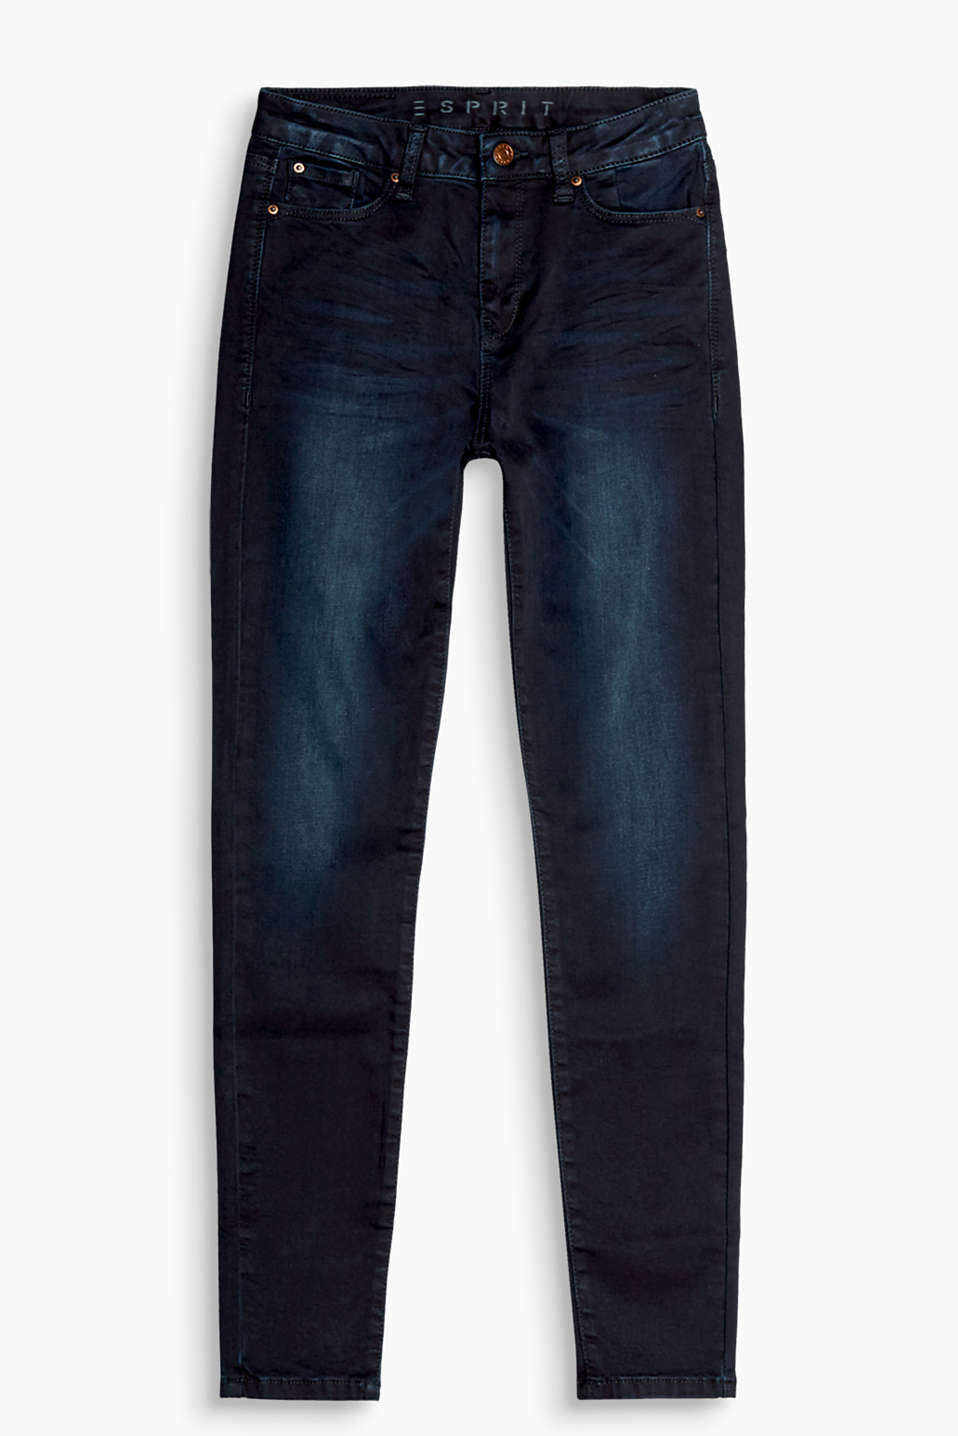 Dark, garment-washed five-pocket jeans with casual vintage effects